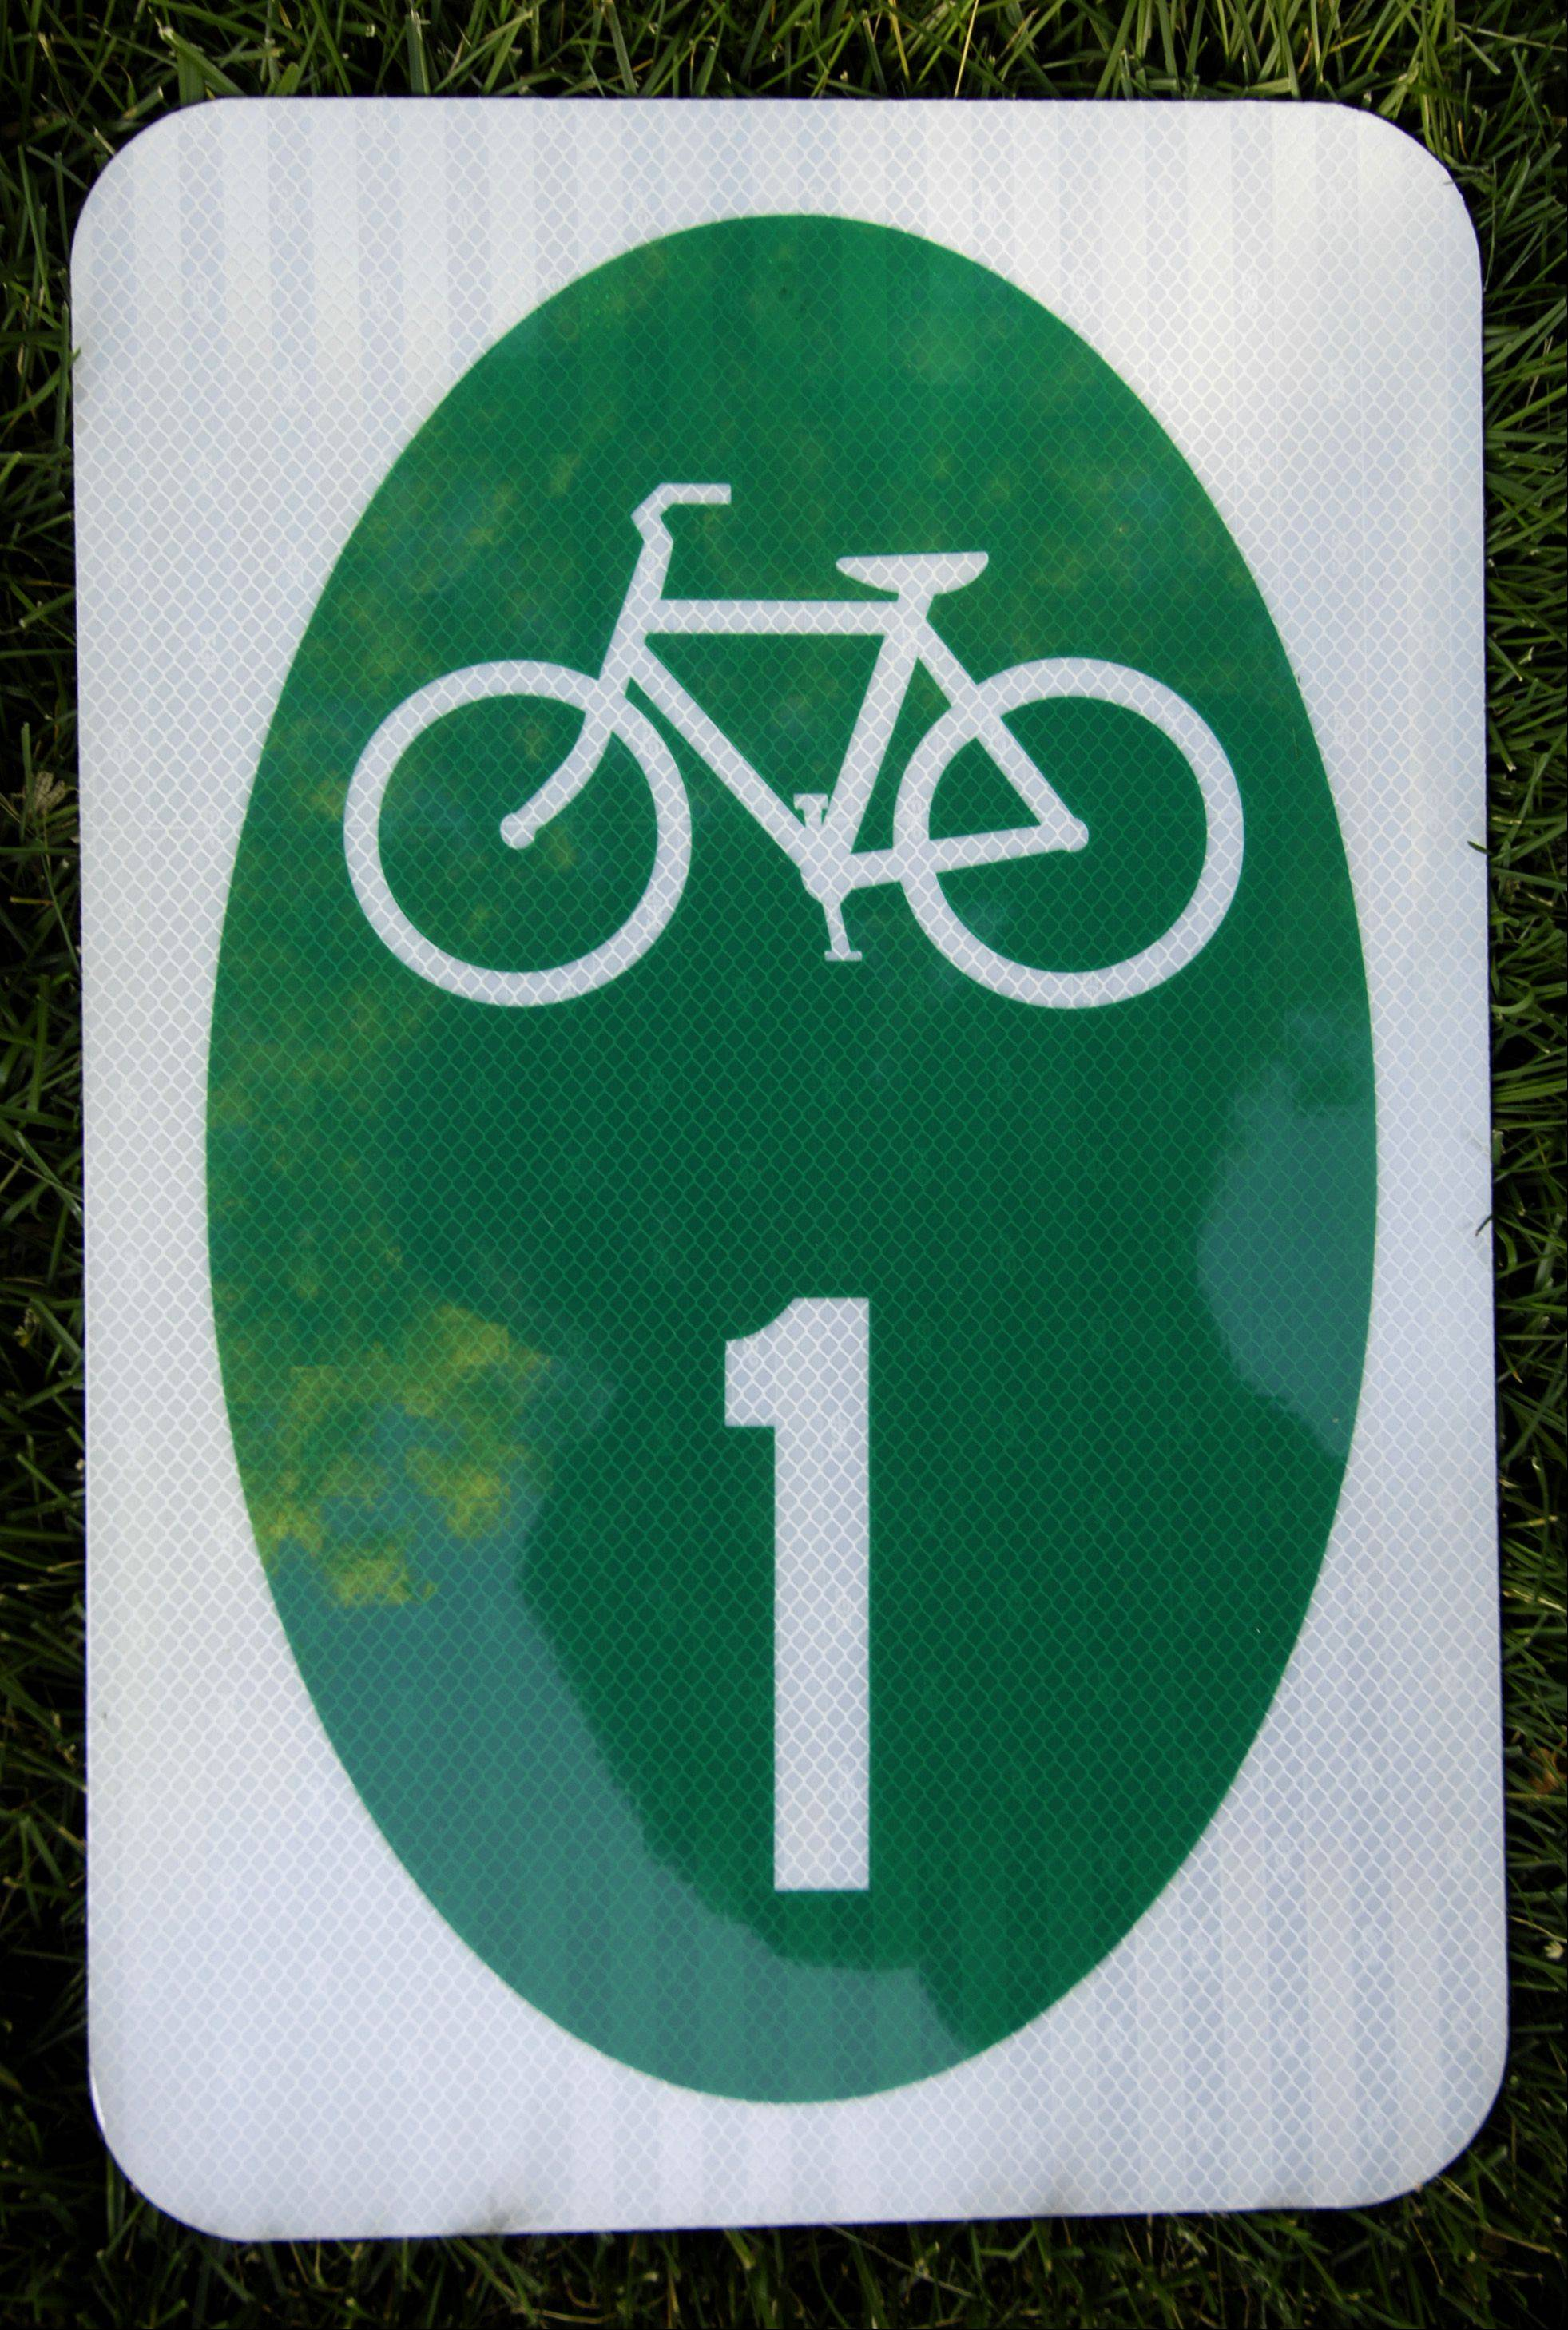 Adding bike route signs to Carol Stream streets would be a less-expensive option than building off-street paths, according to bicycling enthusiast Robert Guico.